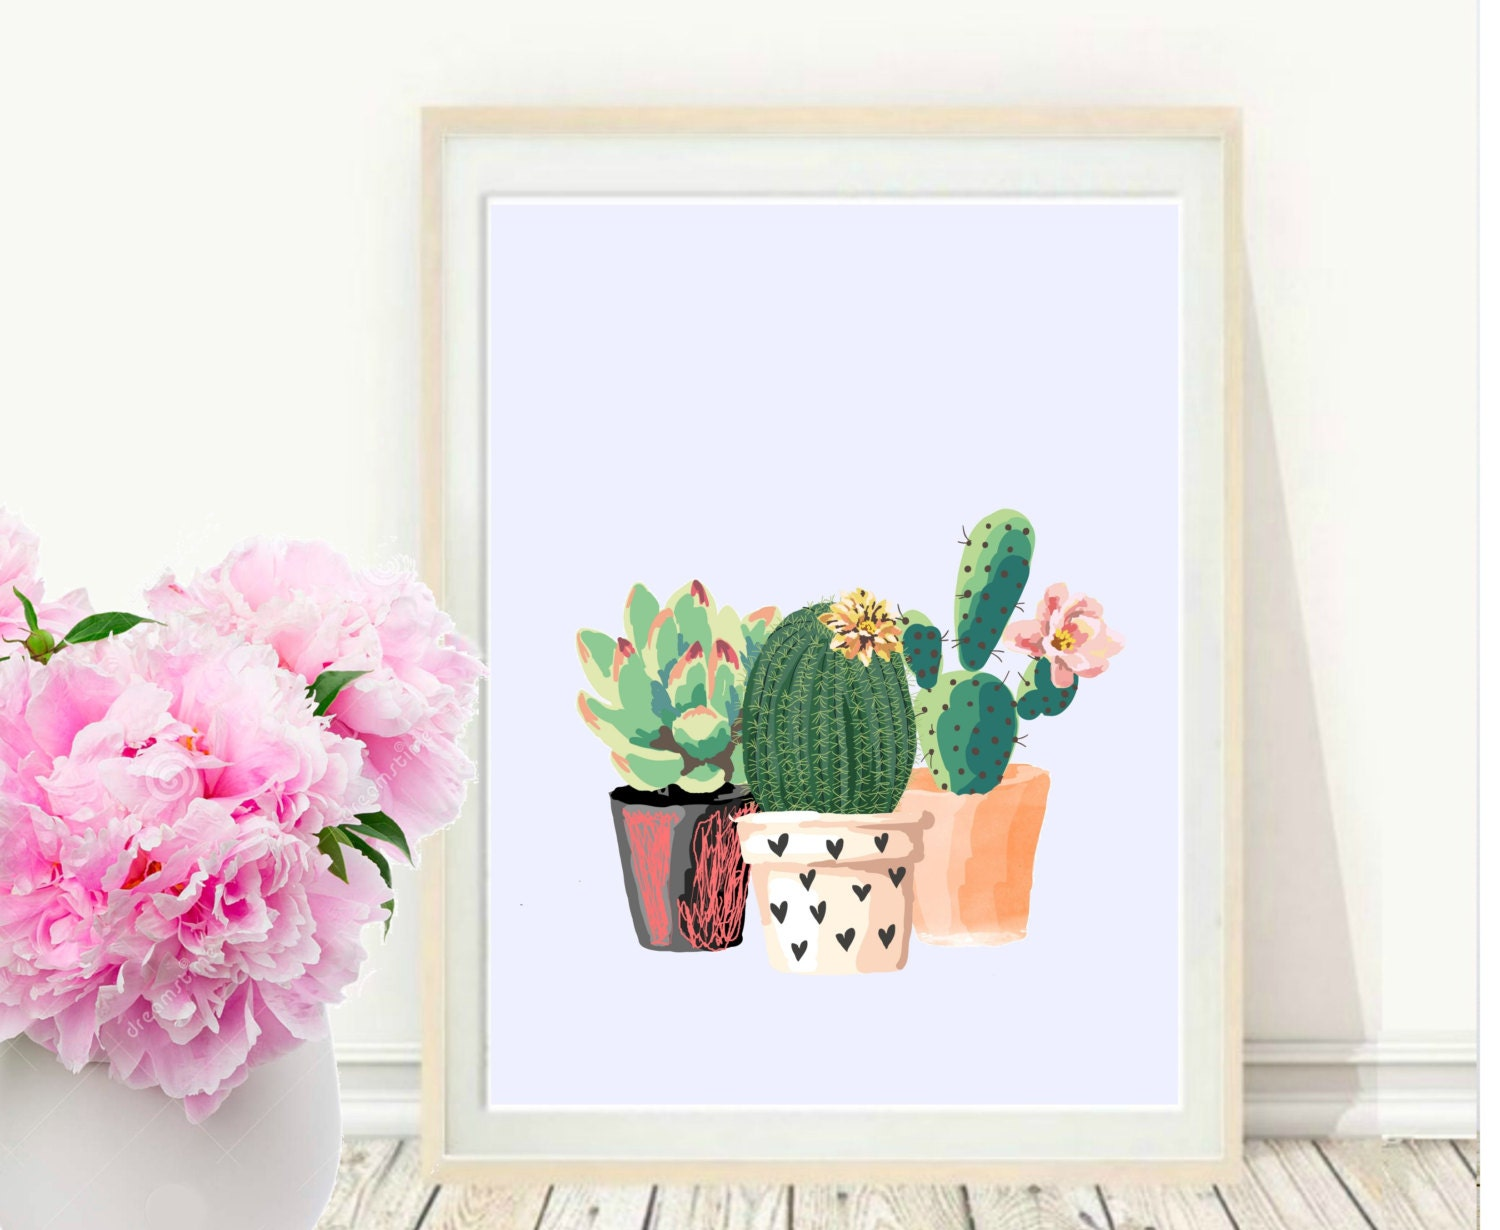 It's just an image of Crazy Printable Home Decor